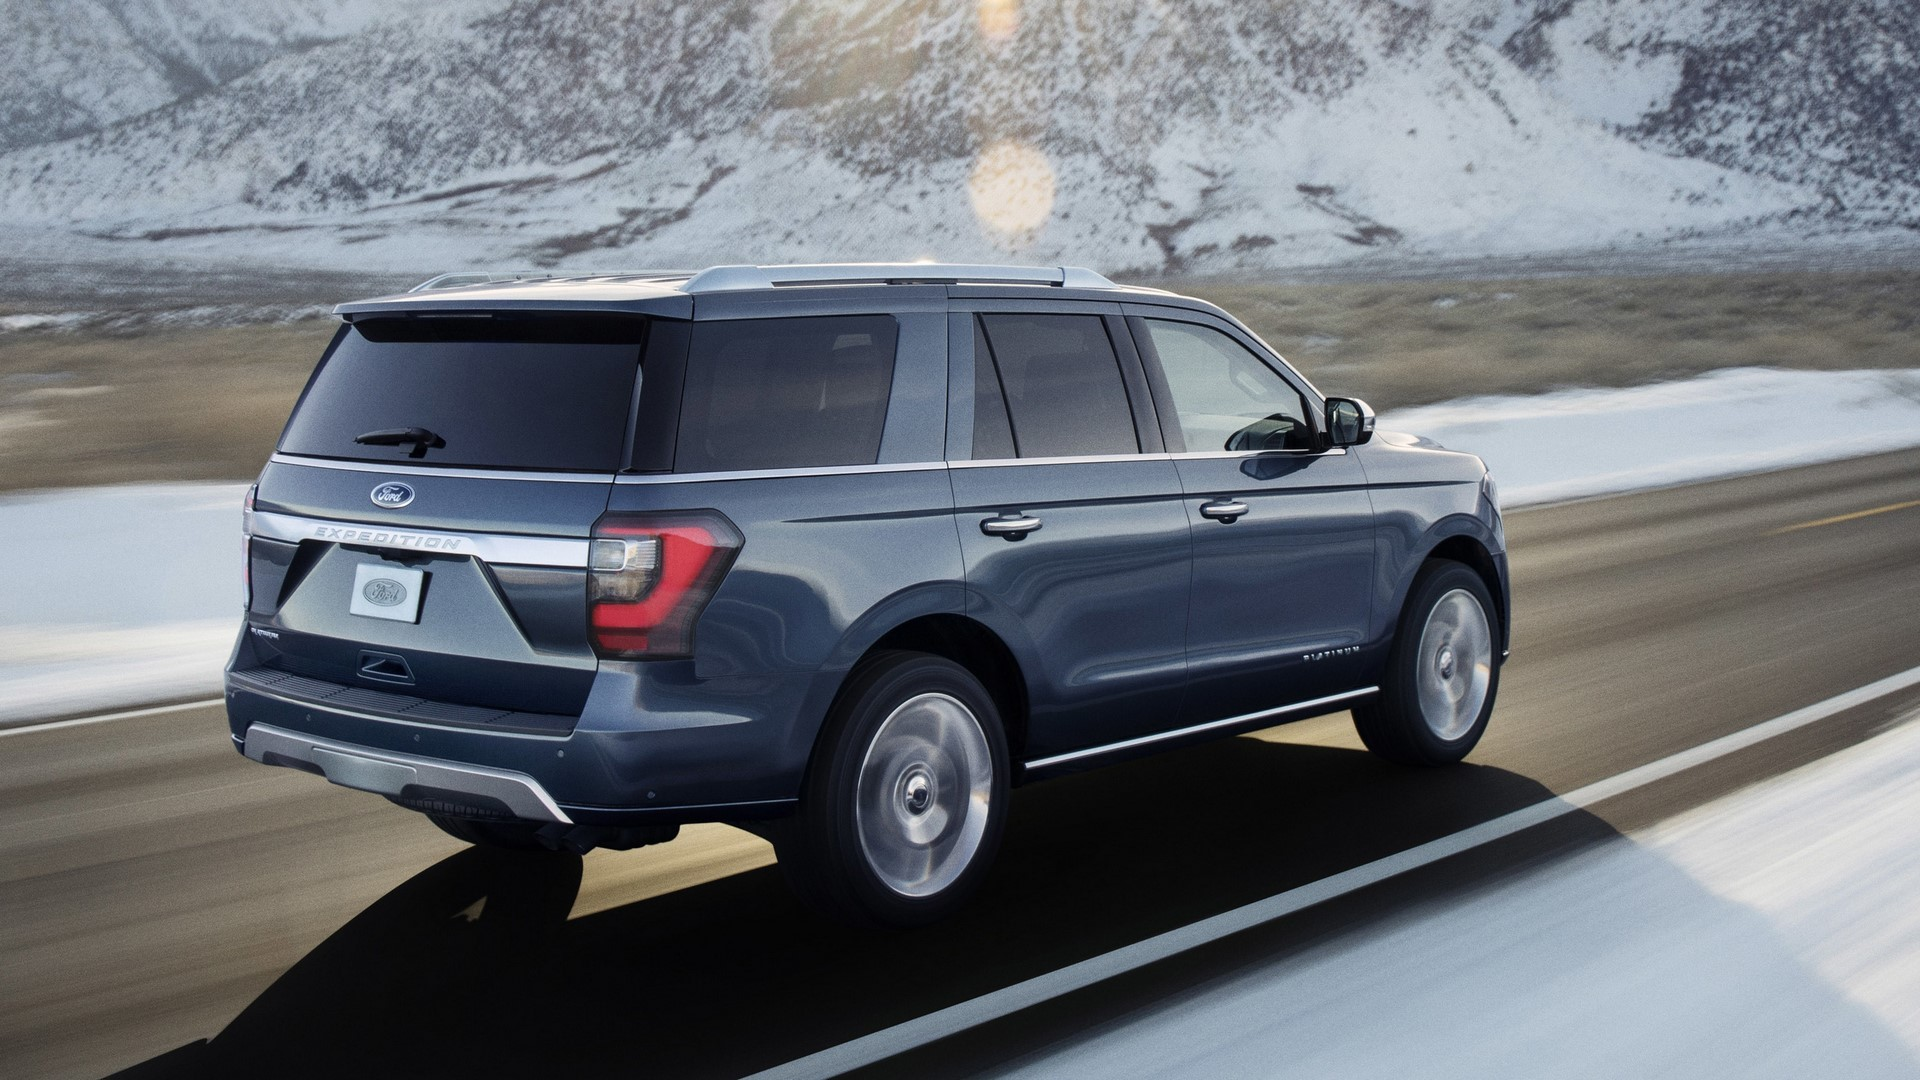 2018-ford-expedition-2-1